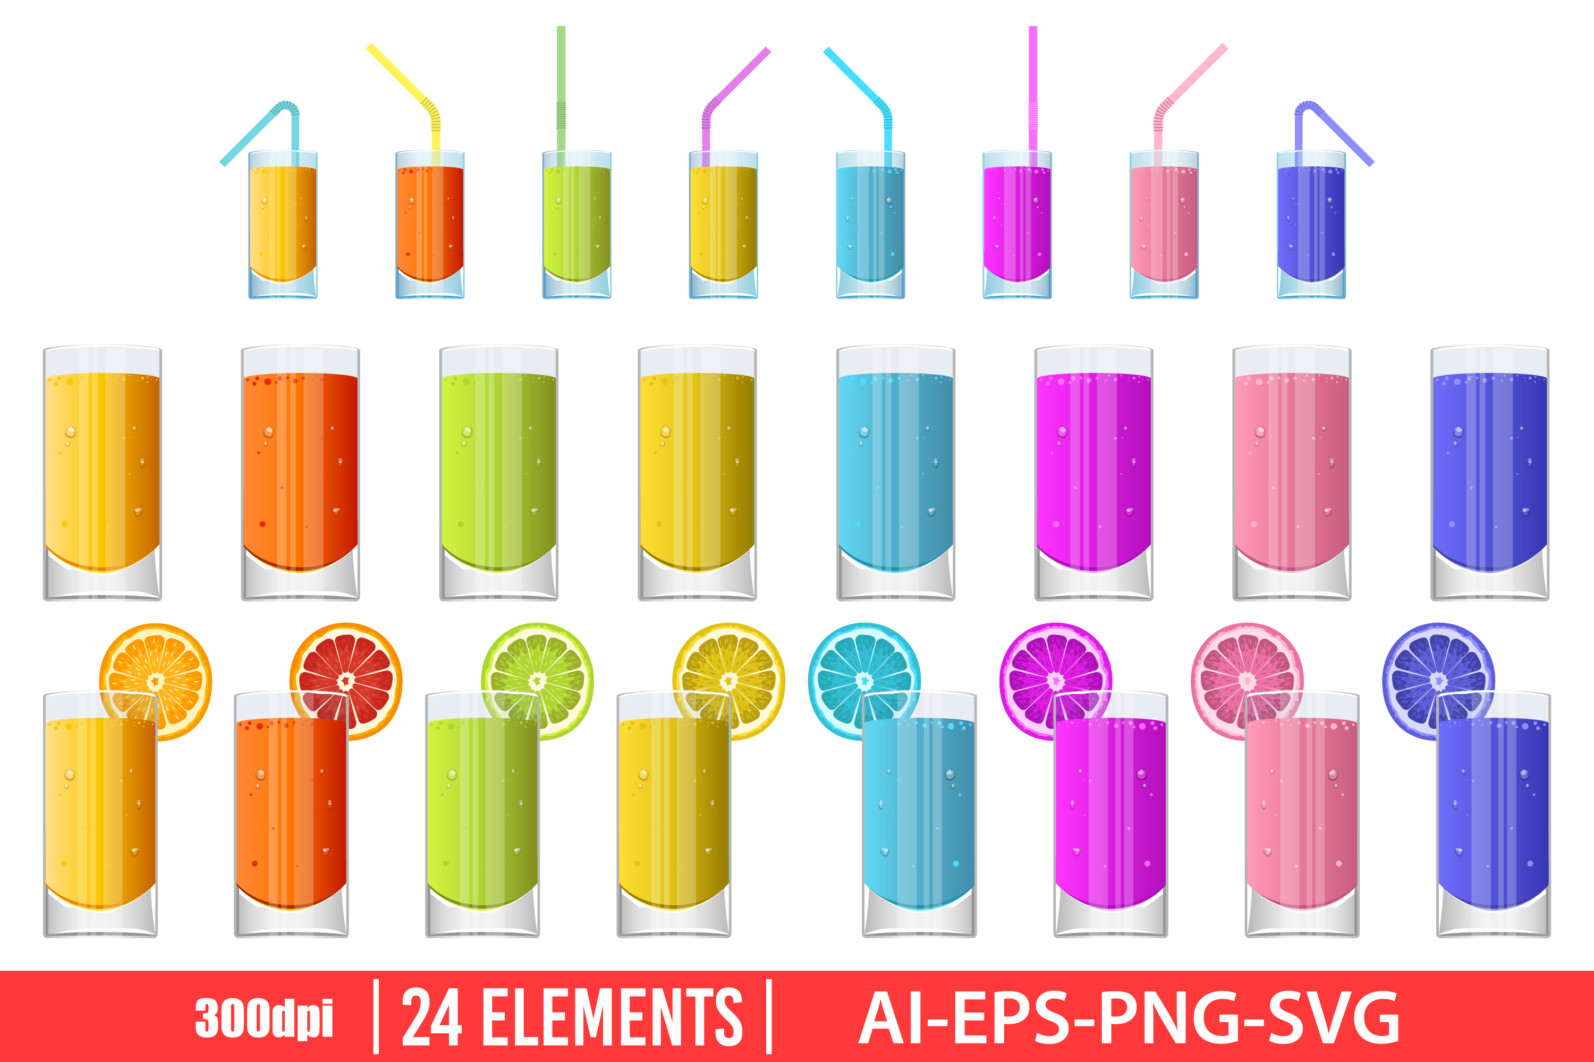 Glass of fresh juice clipart vector design illustration. Fresh juice glass set. Vector Clipart Print - JUICE GLASS scaled -